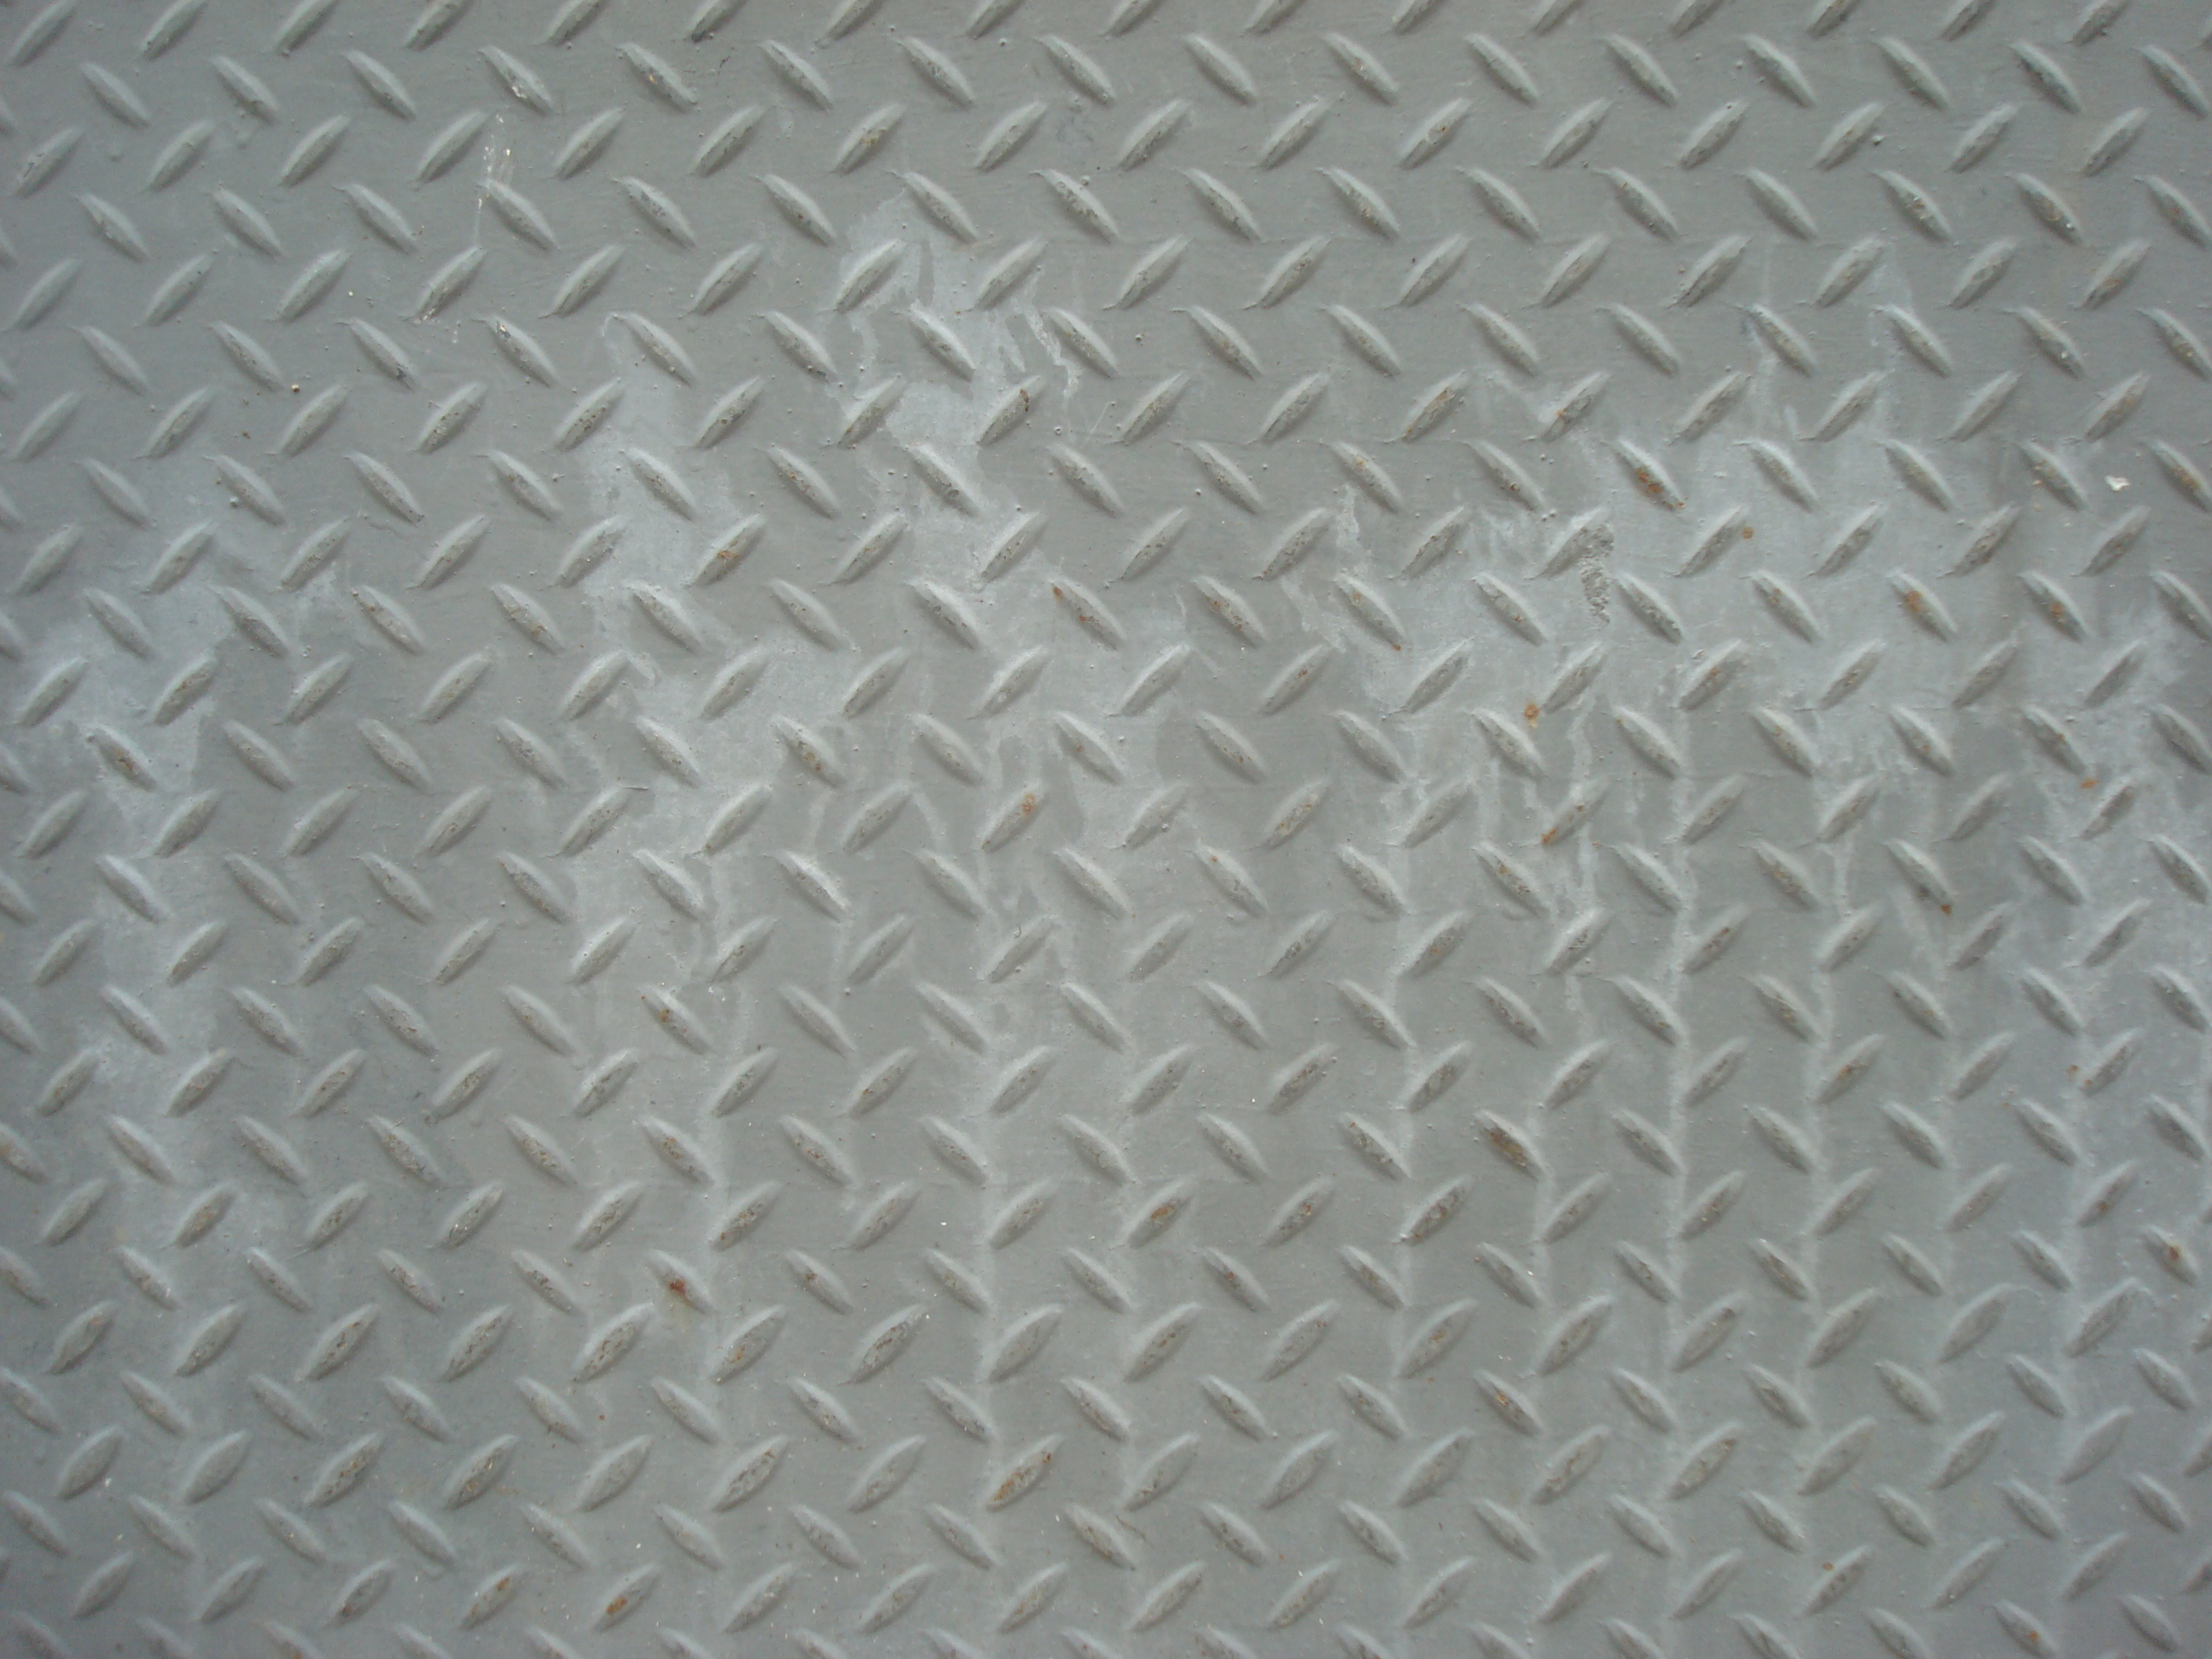 Metal texture, Dirty, Gray, Grey, Grunge, HQ Photo